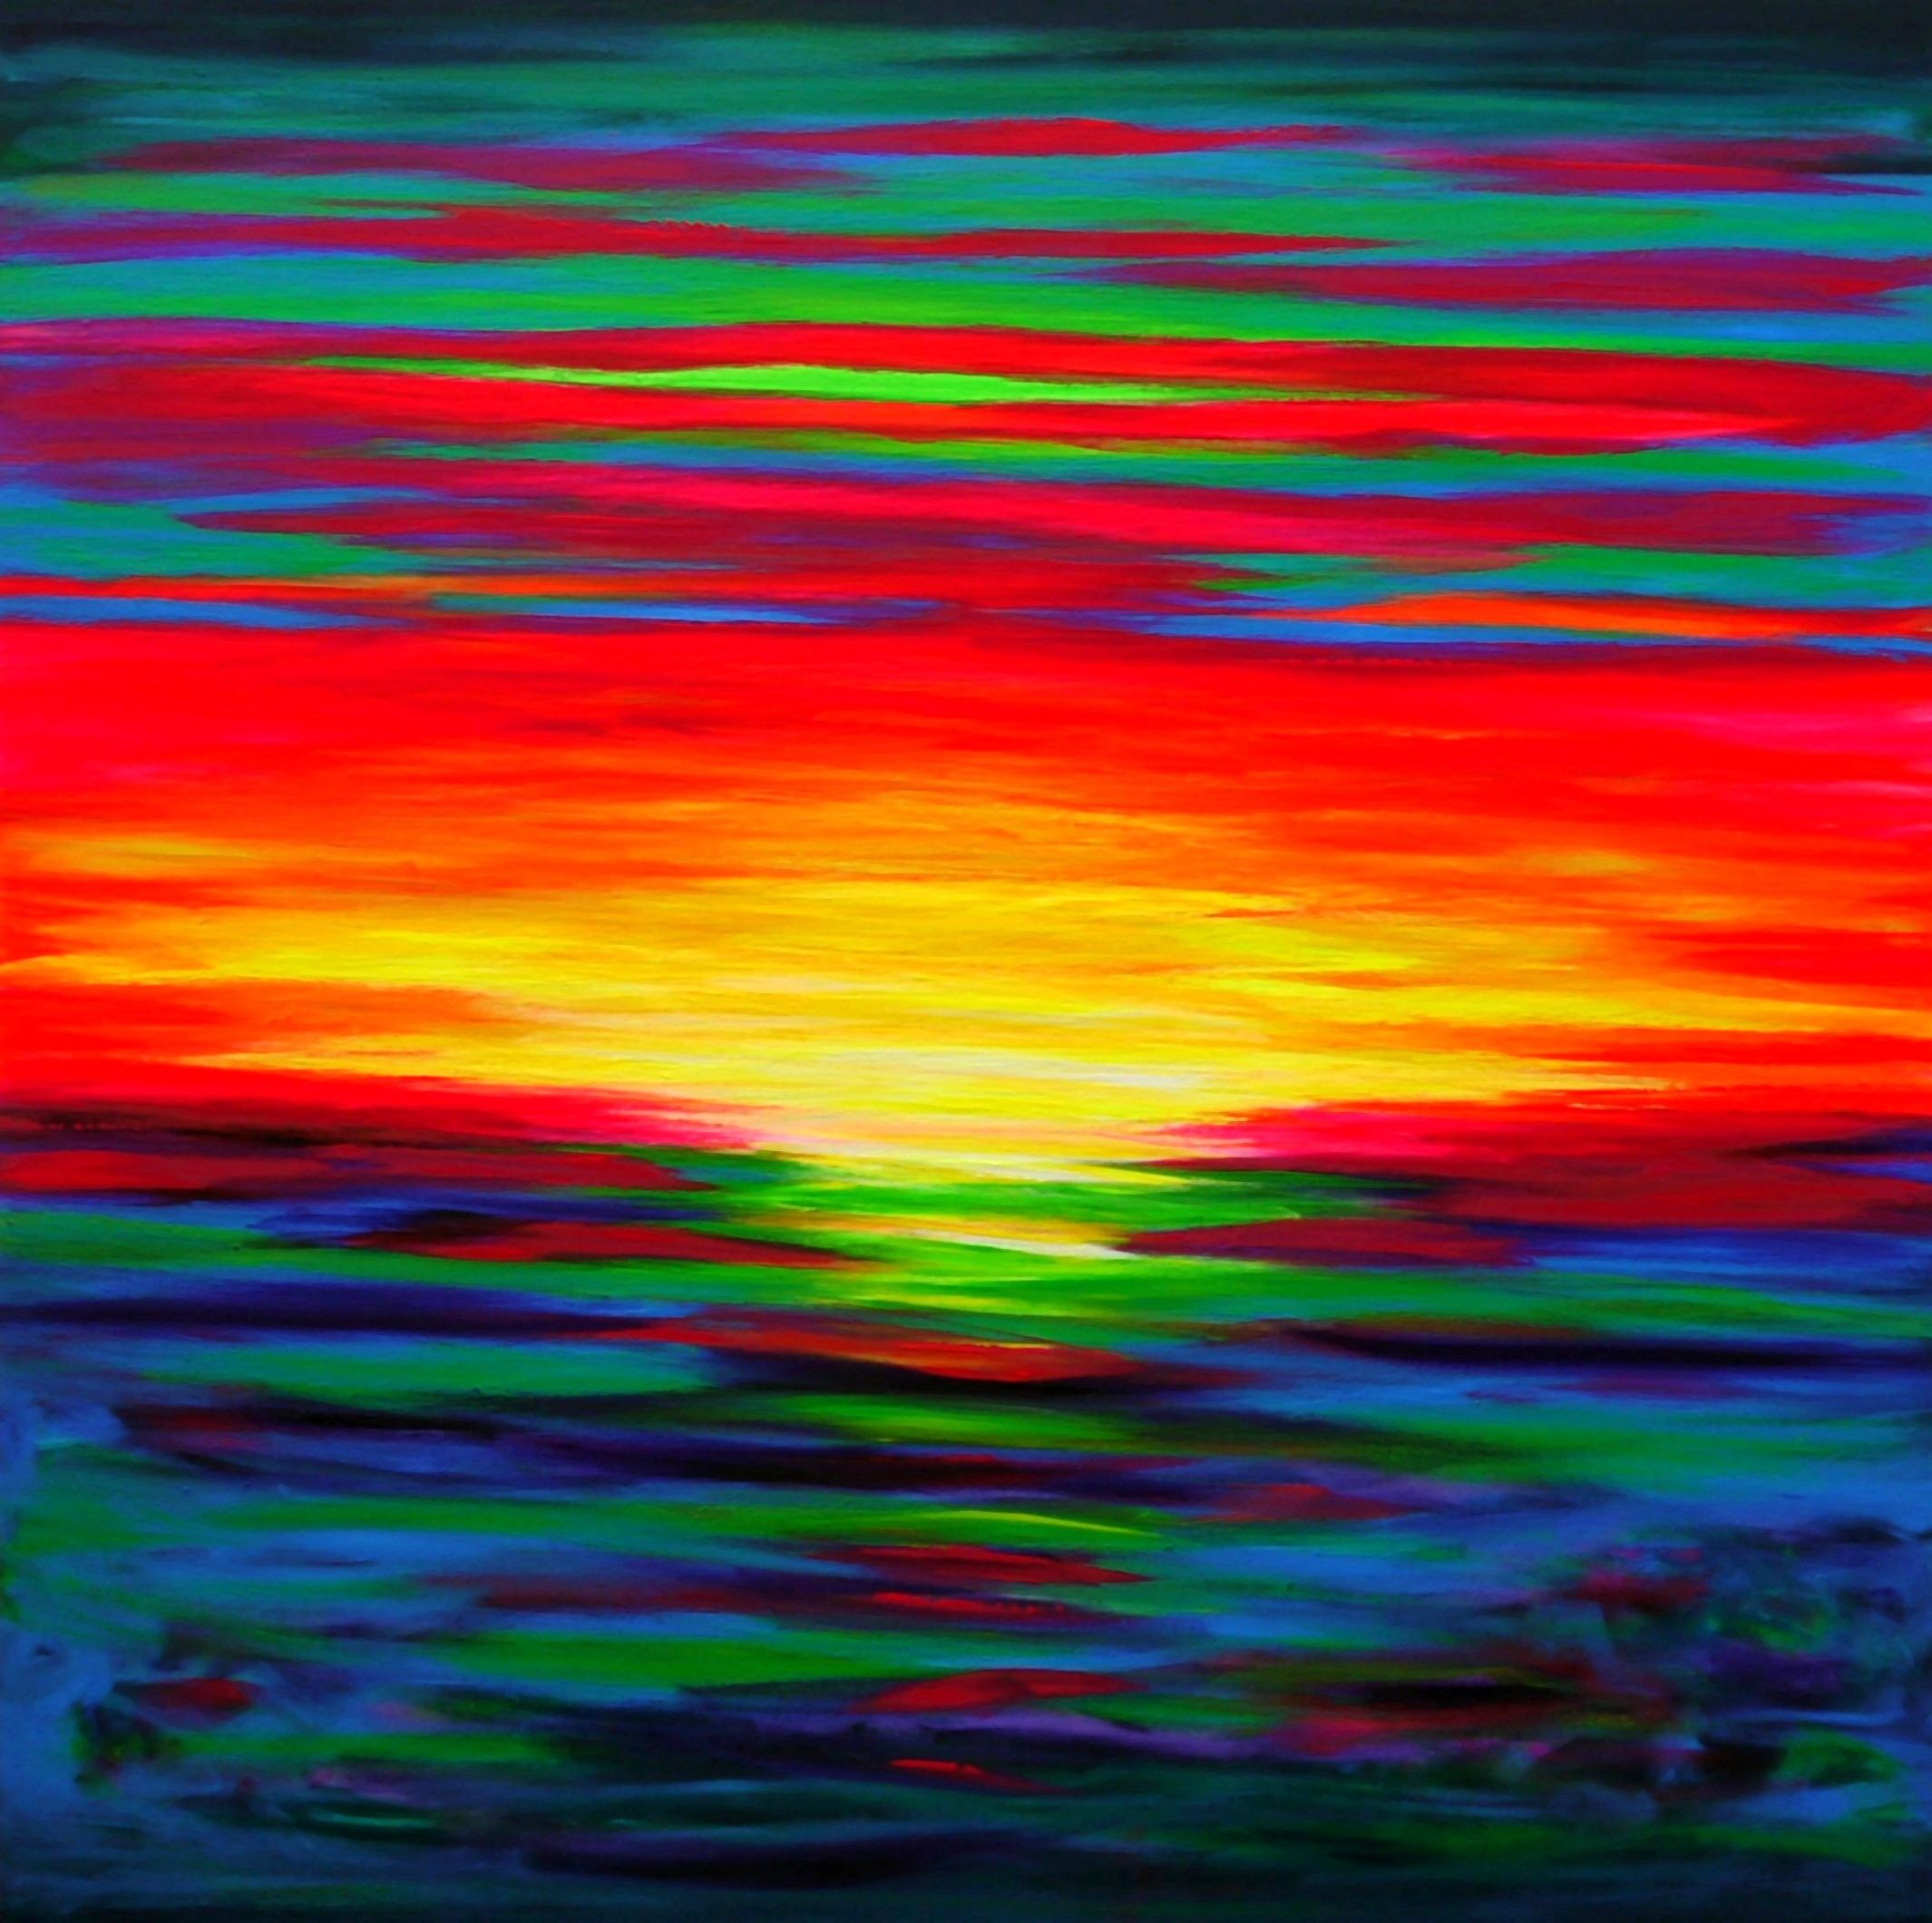 Sunburst Through the Sky, a new large psychedelic sunset ...